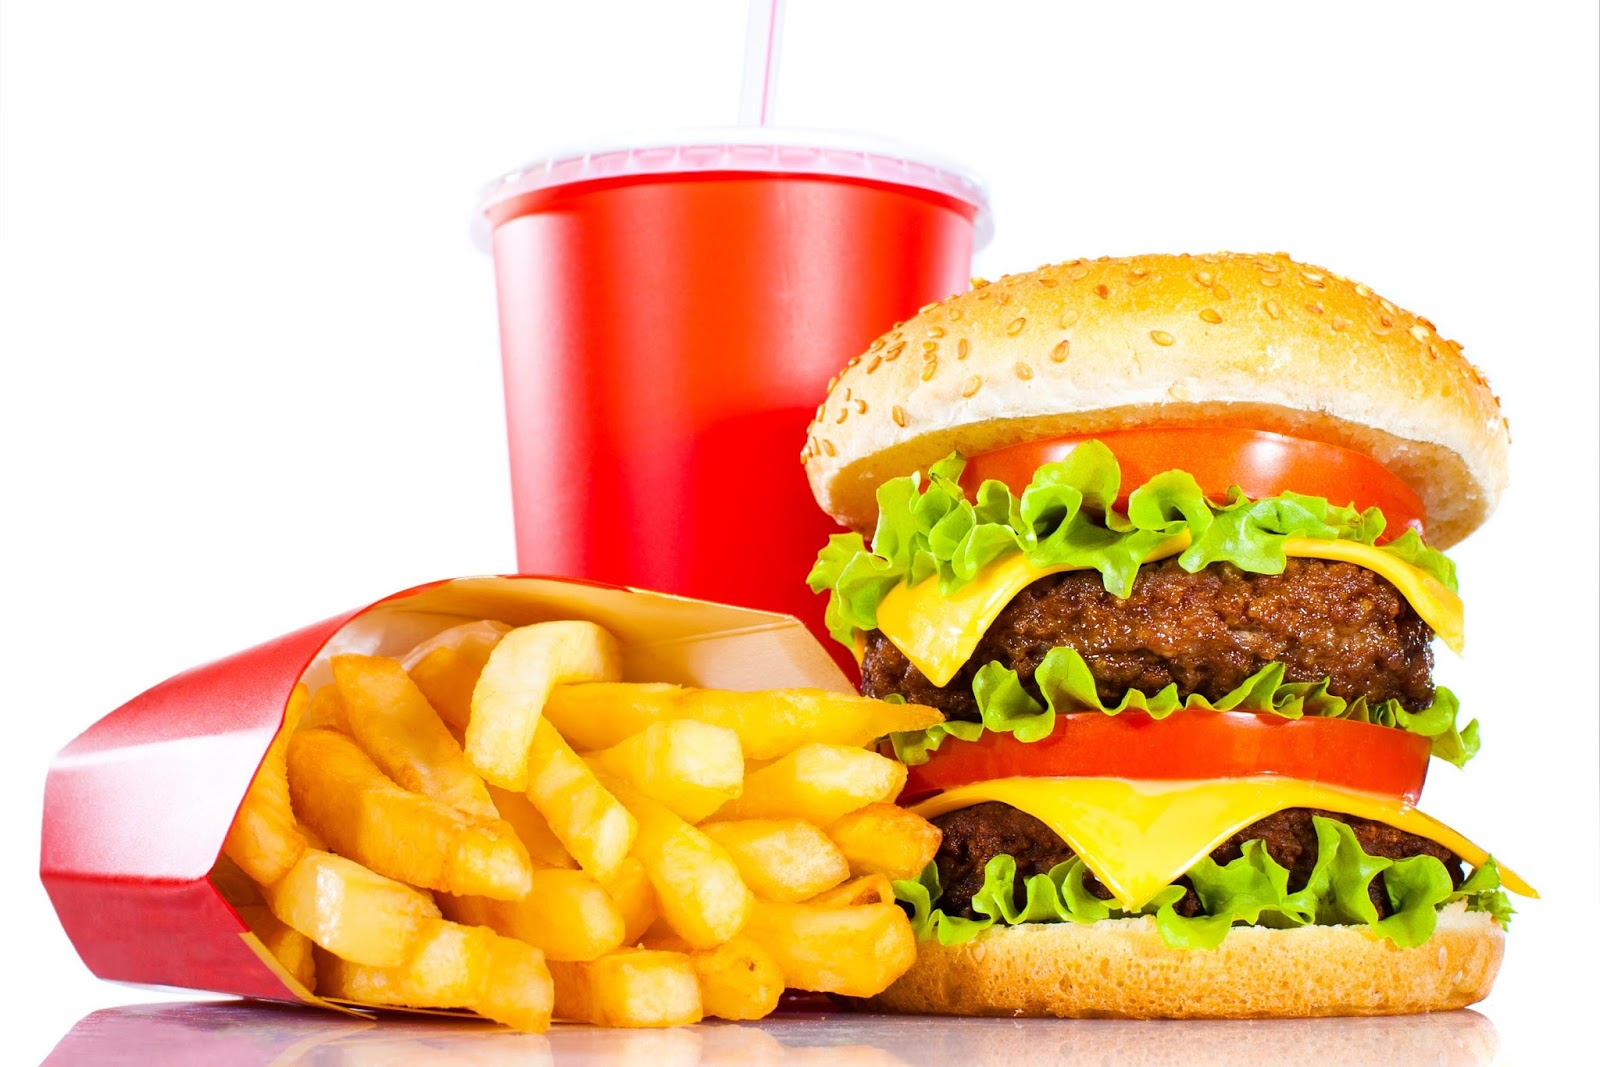 012 Opinion Essay About Fast Food Example Unbelievable Restaurants Is A Good Alternative To Cooking For Yourself